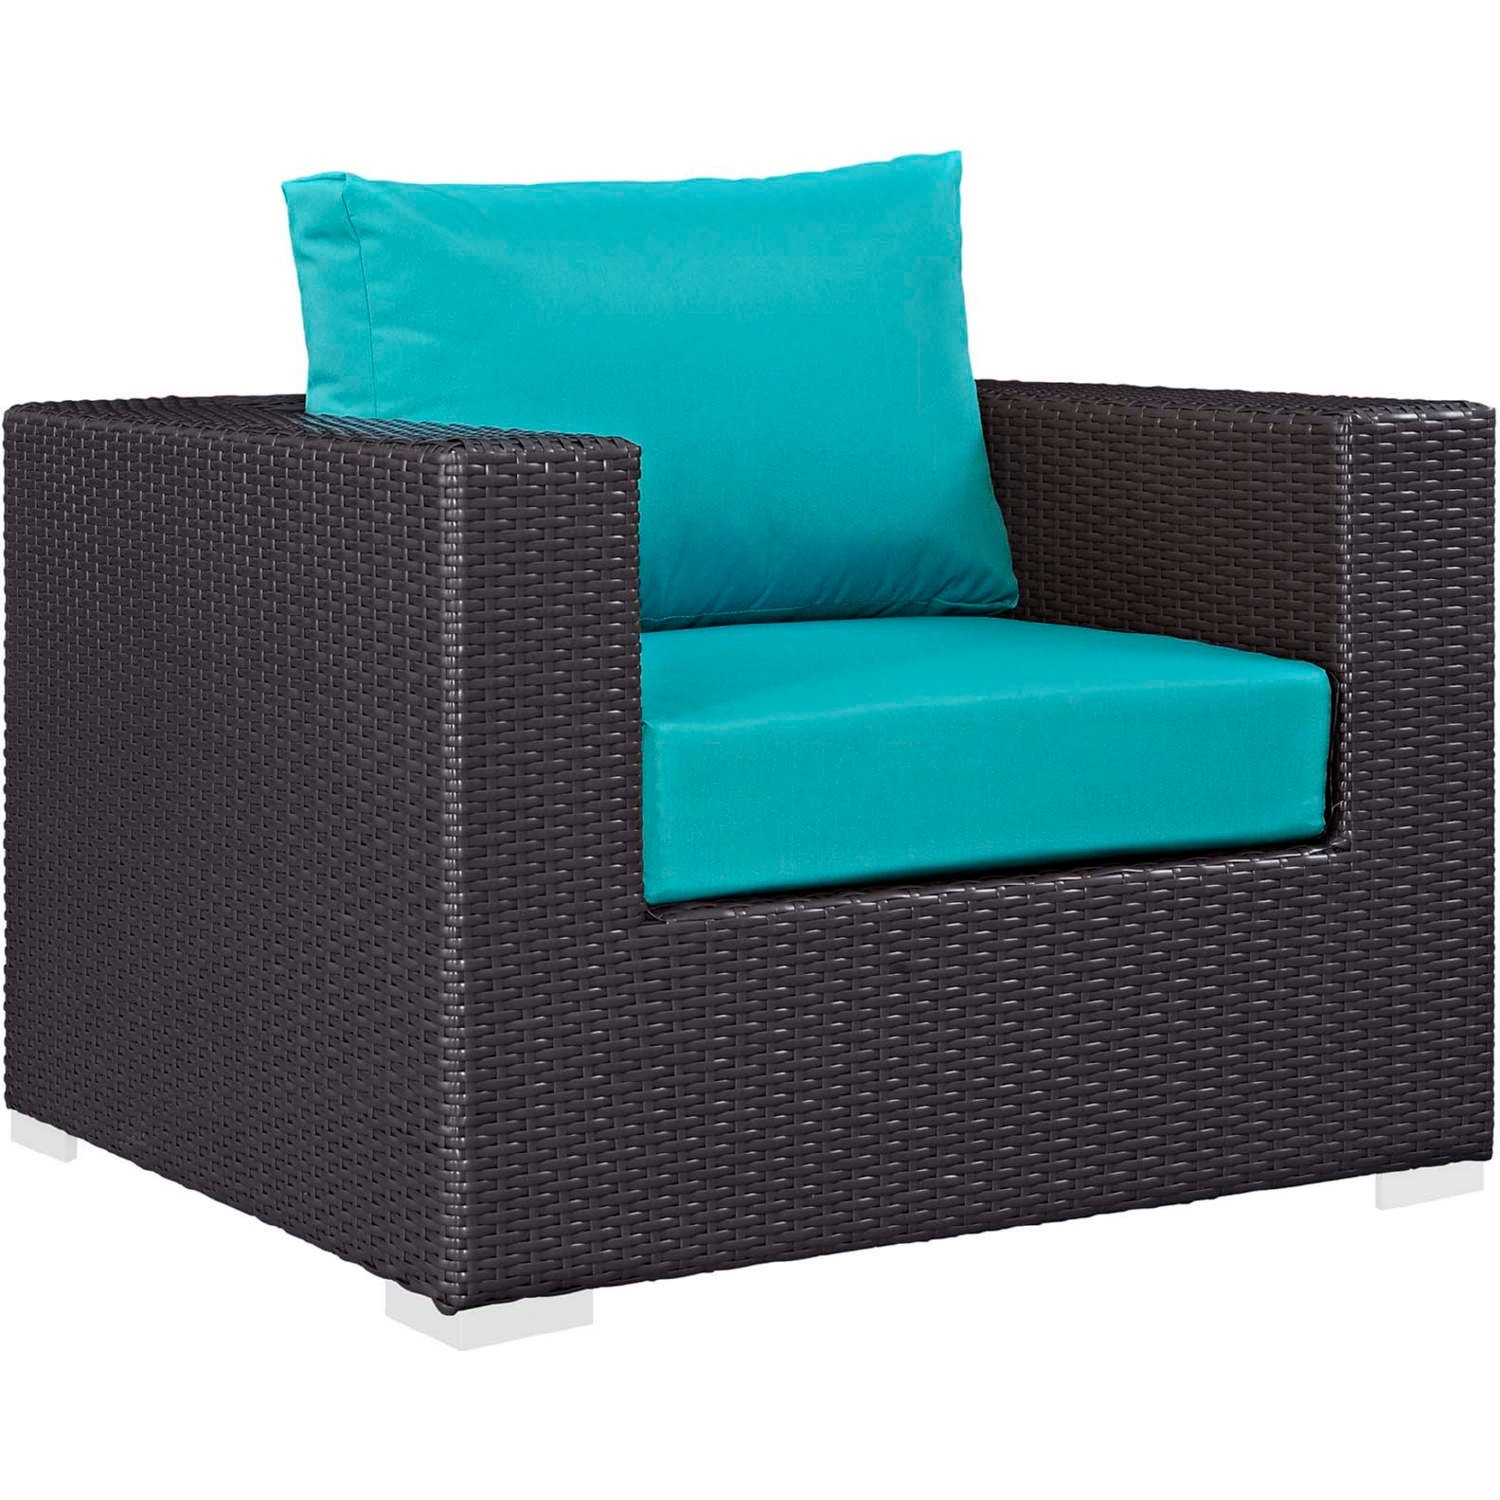 4-Piece Outdoor Sectional In Turquoise W/ Fire Pit - image-2